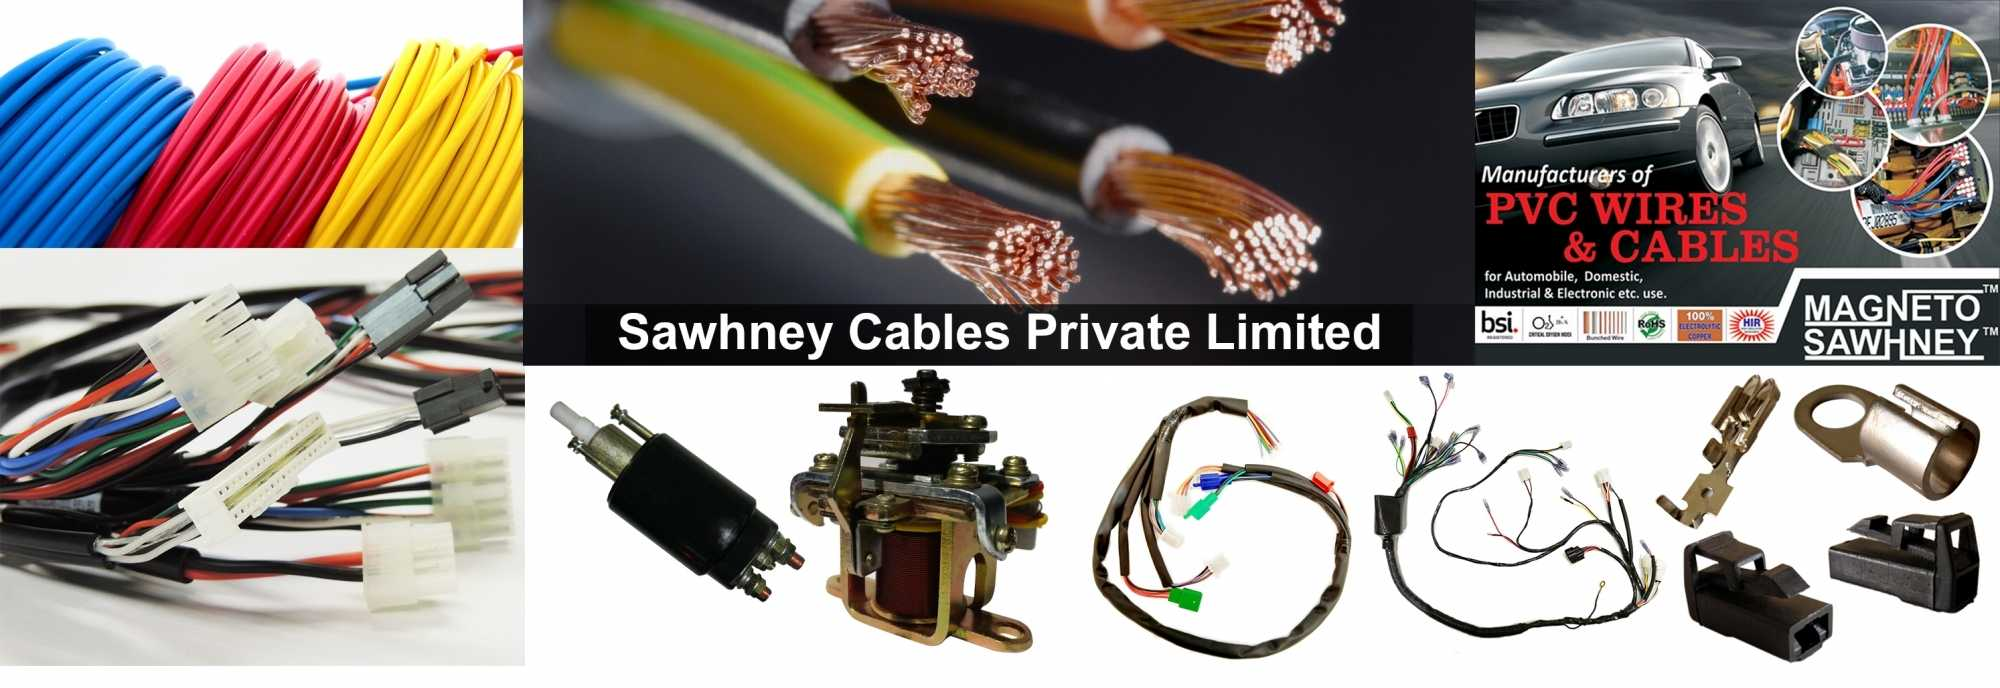 Cable Harness Manufacturers in Rai, Sonepat